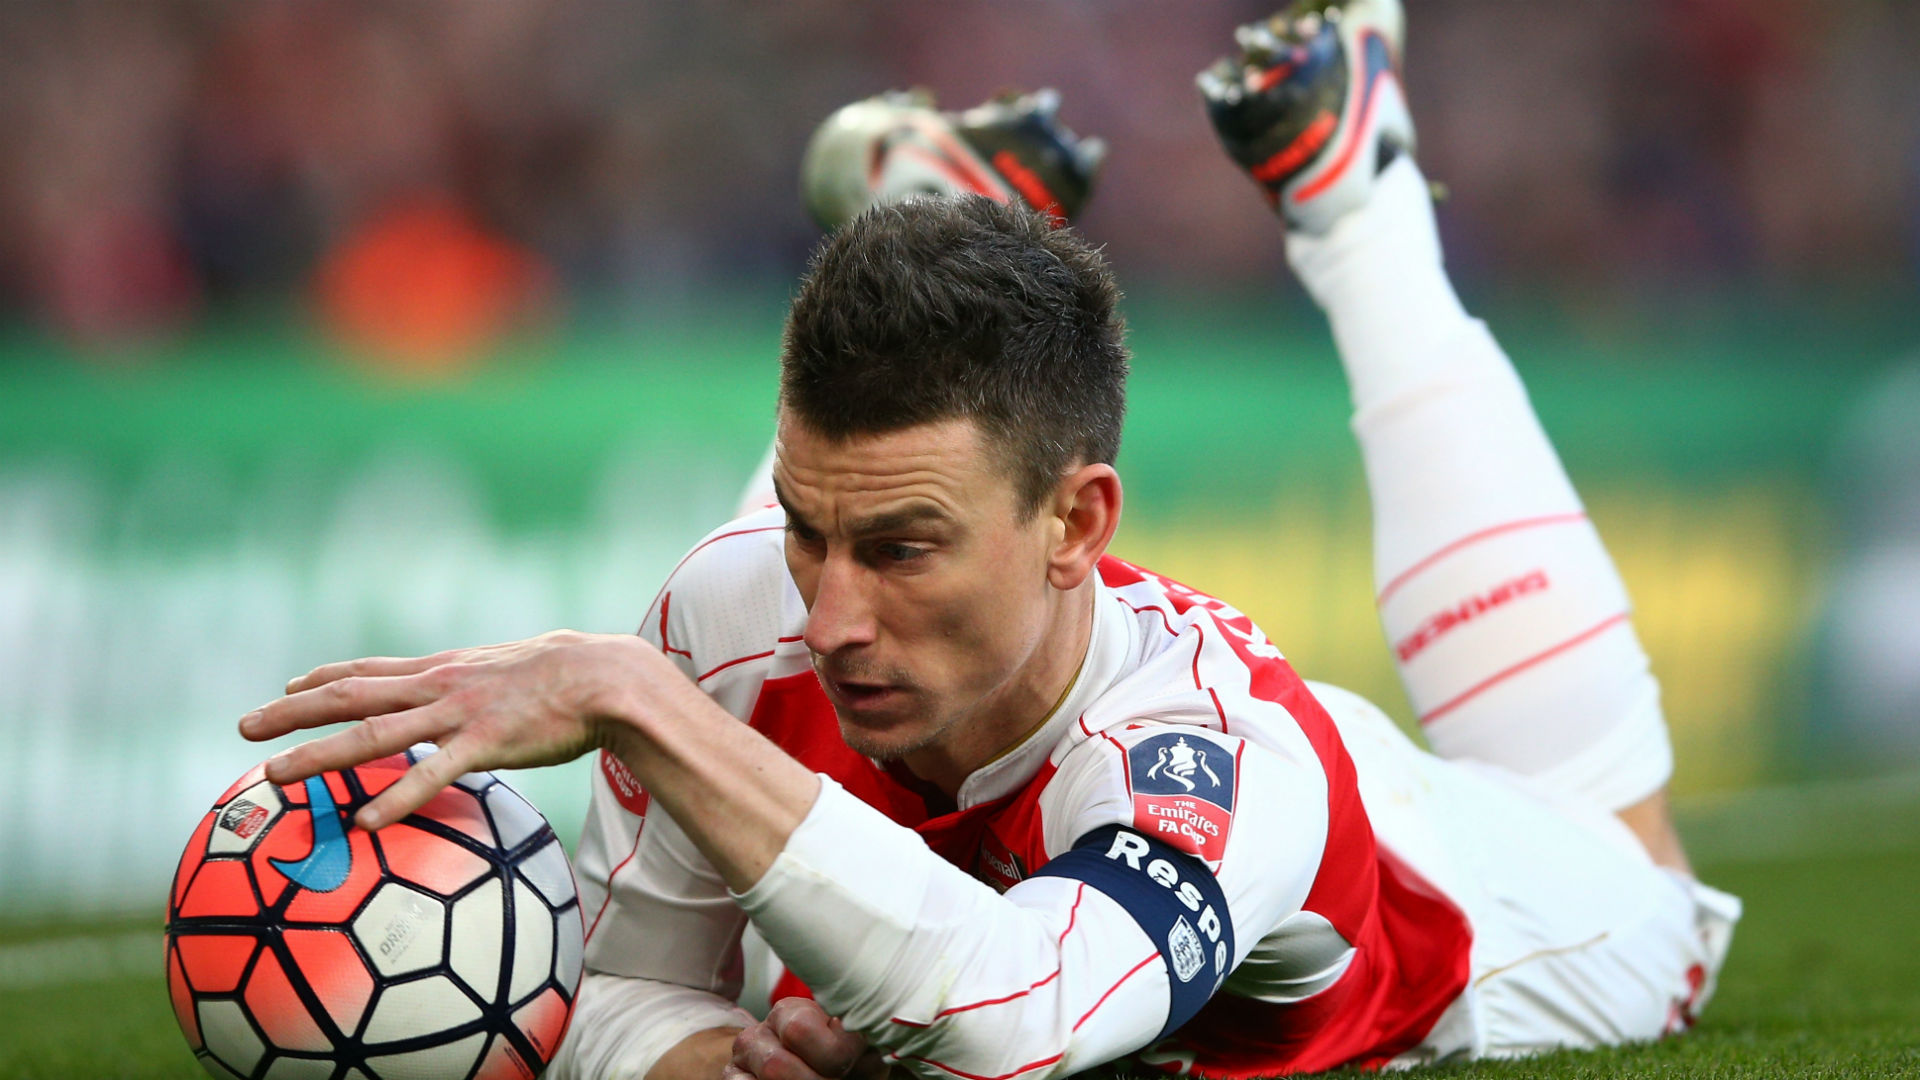 Voda NXT LVL Play like Laurent Koscielny